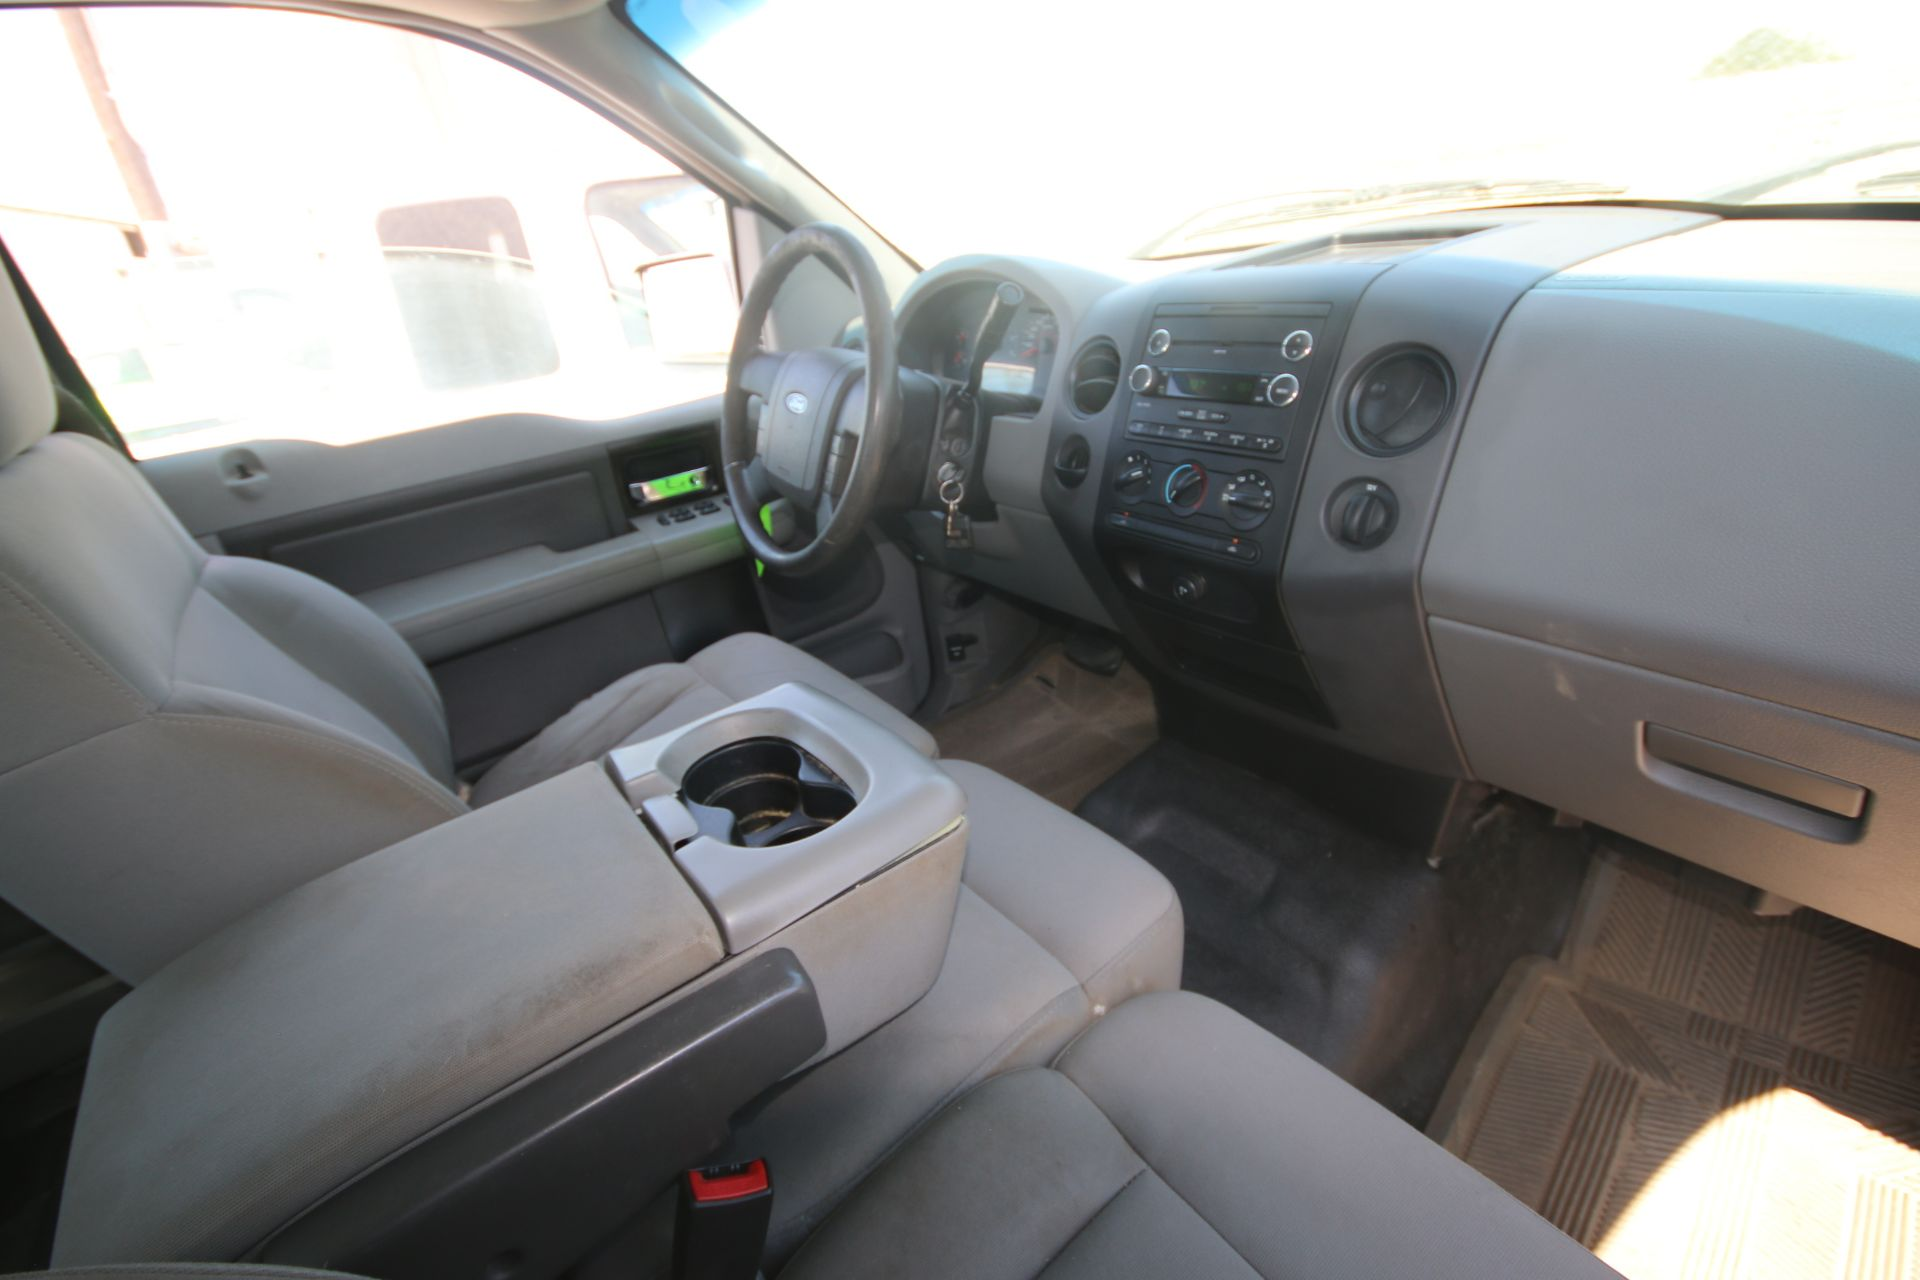 2008 Ford F150 Pick Up Truck, VIN #: 1FTRX12W7BFB9710, with 214,817 Miles, Started Up as of 06/24/ - Image 13 of 24